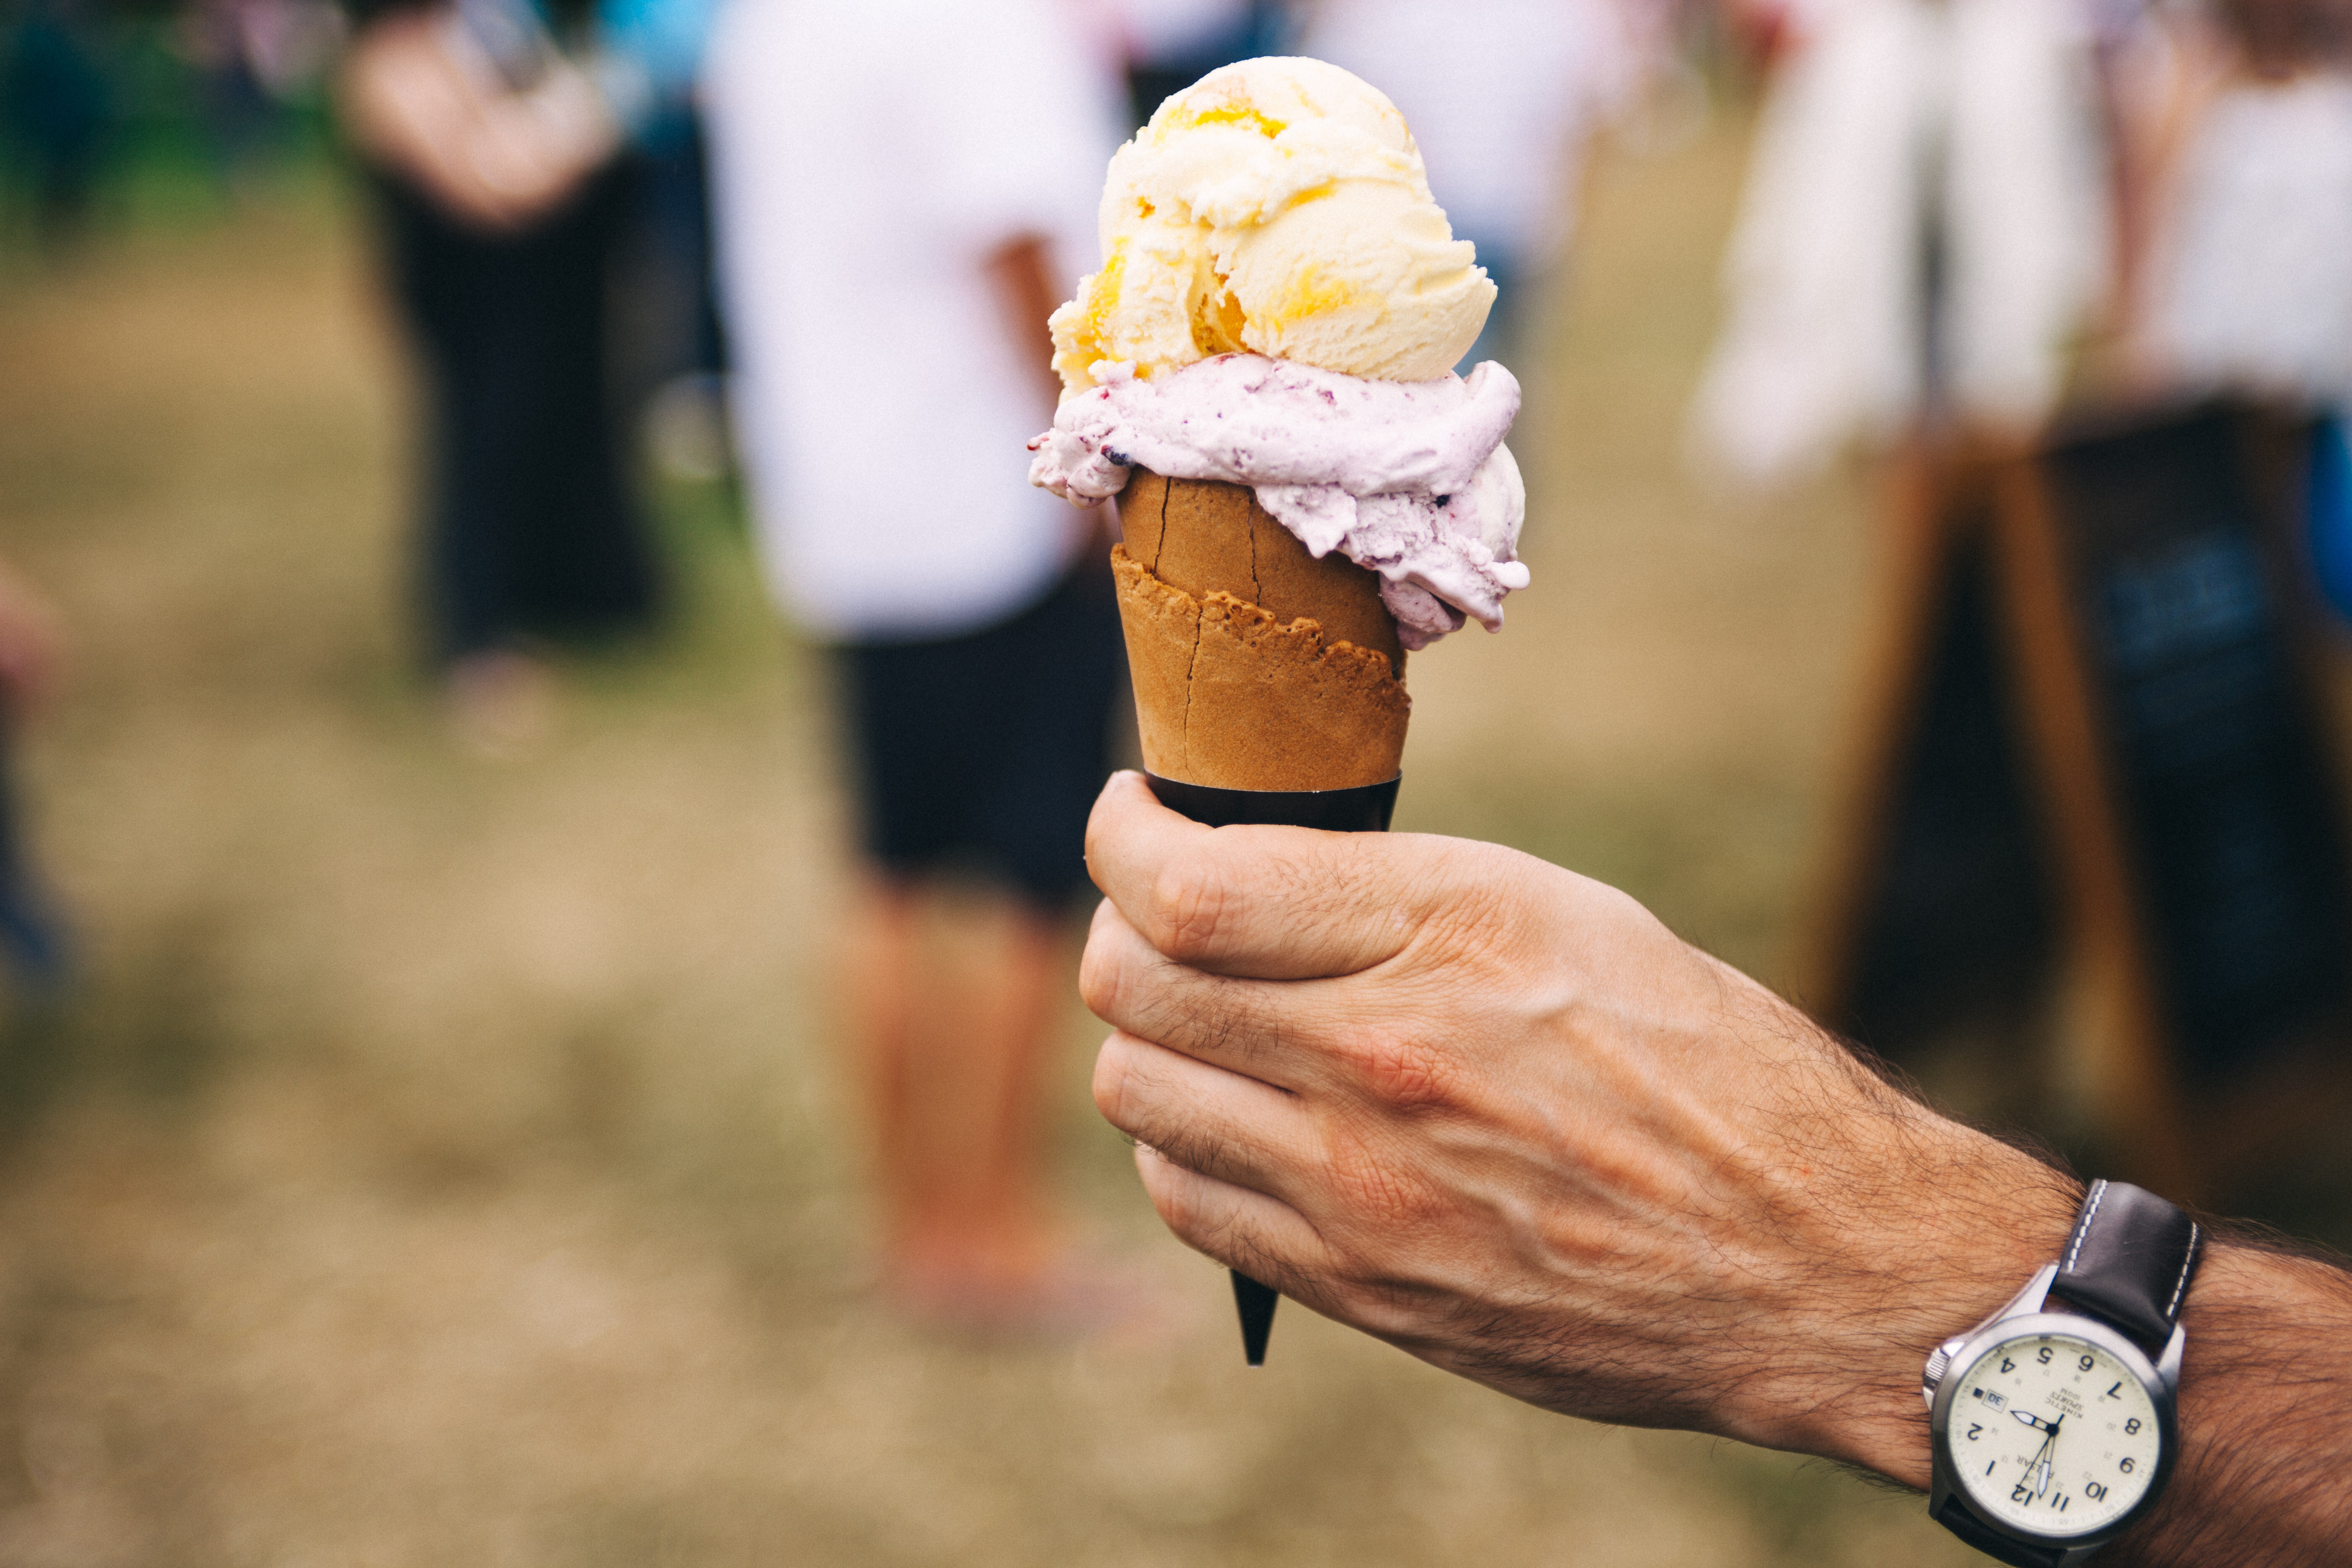 person holding ice cream on cone